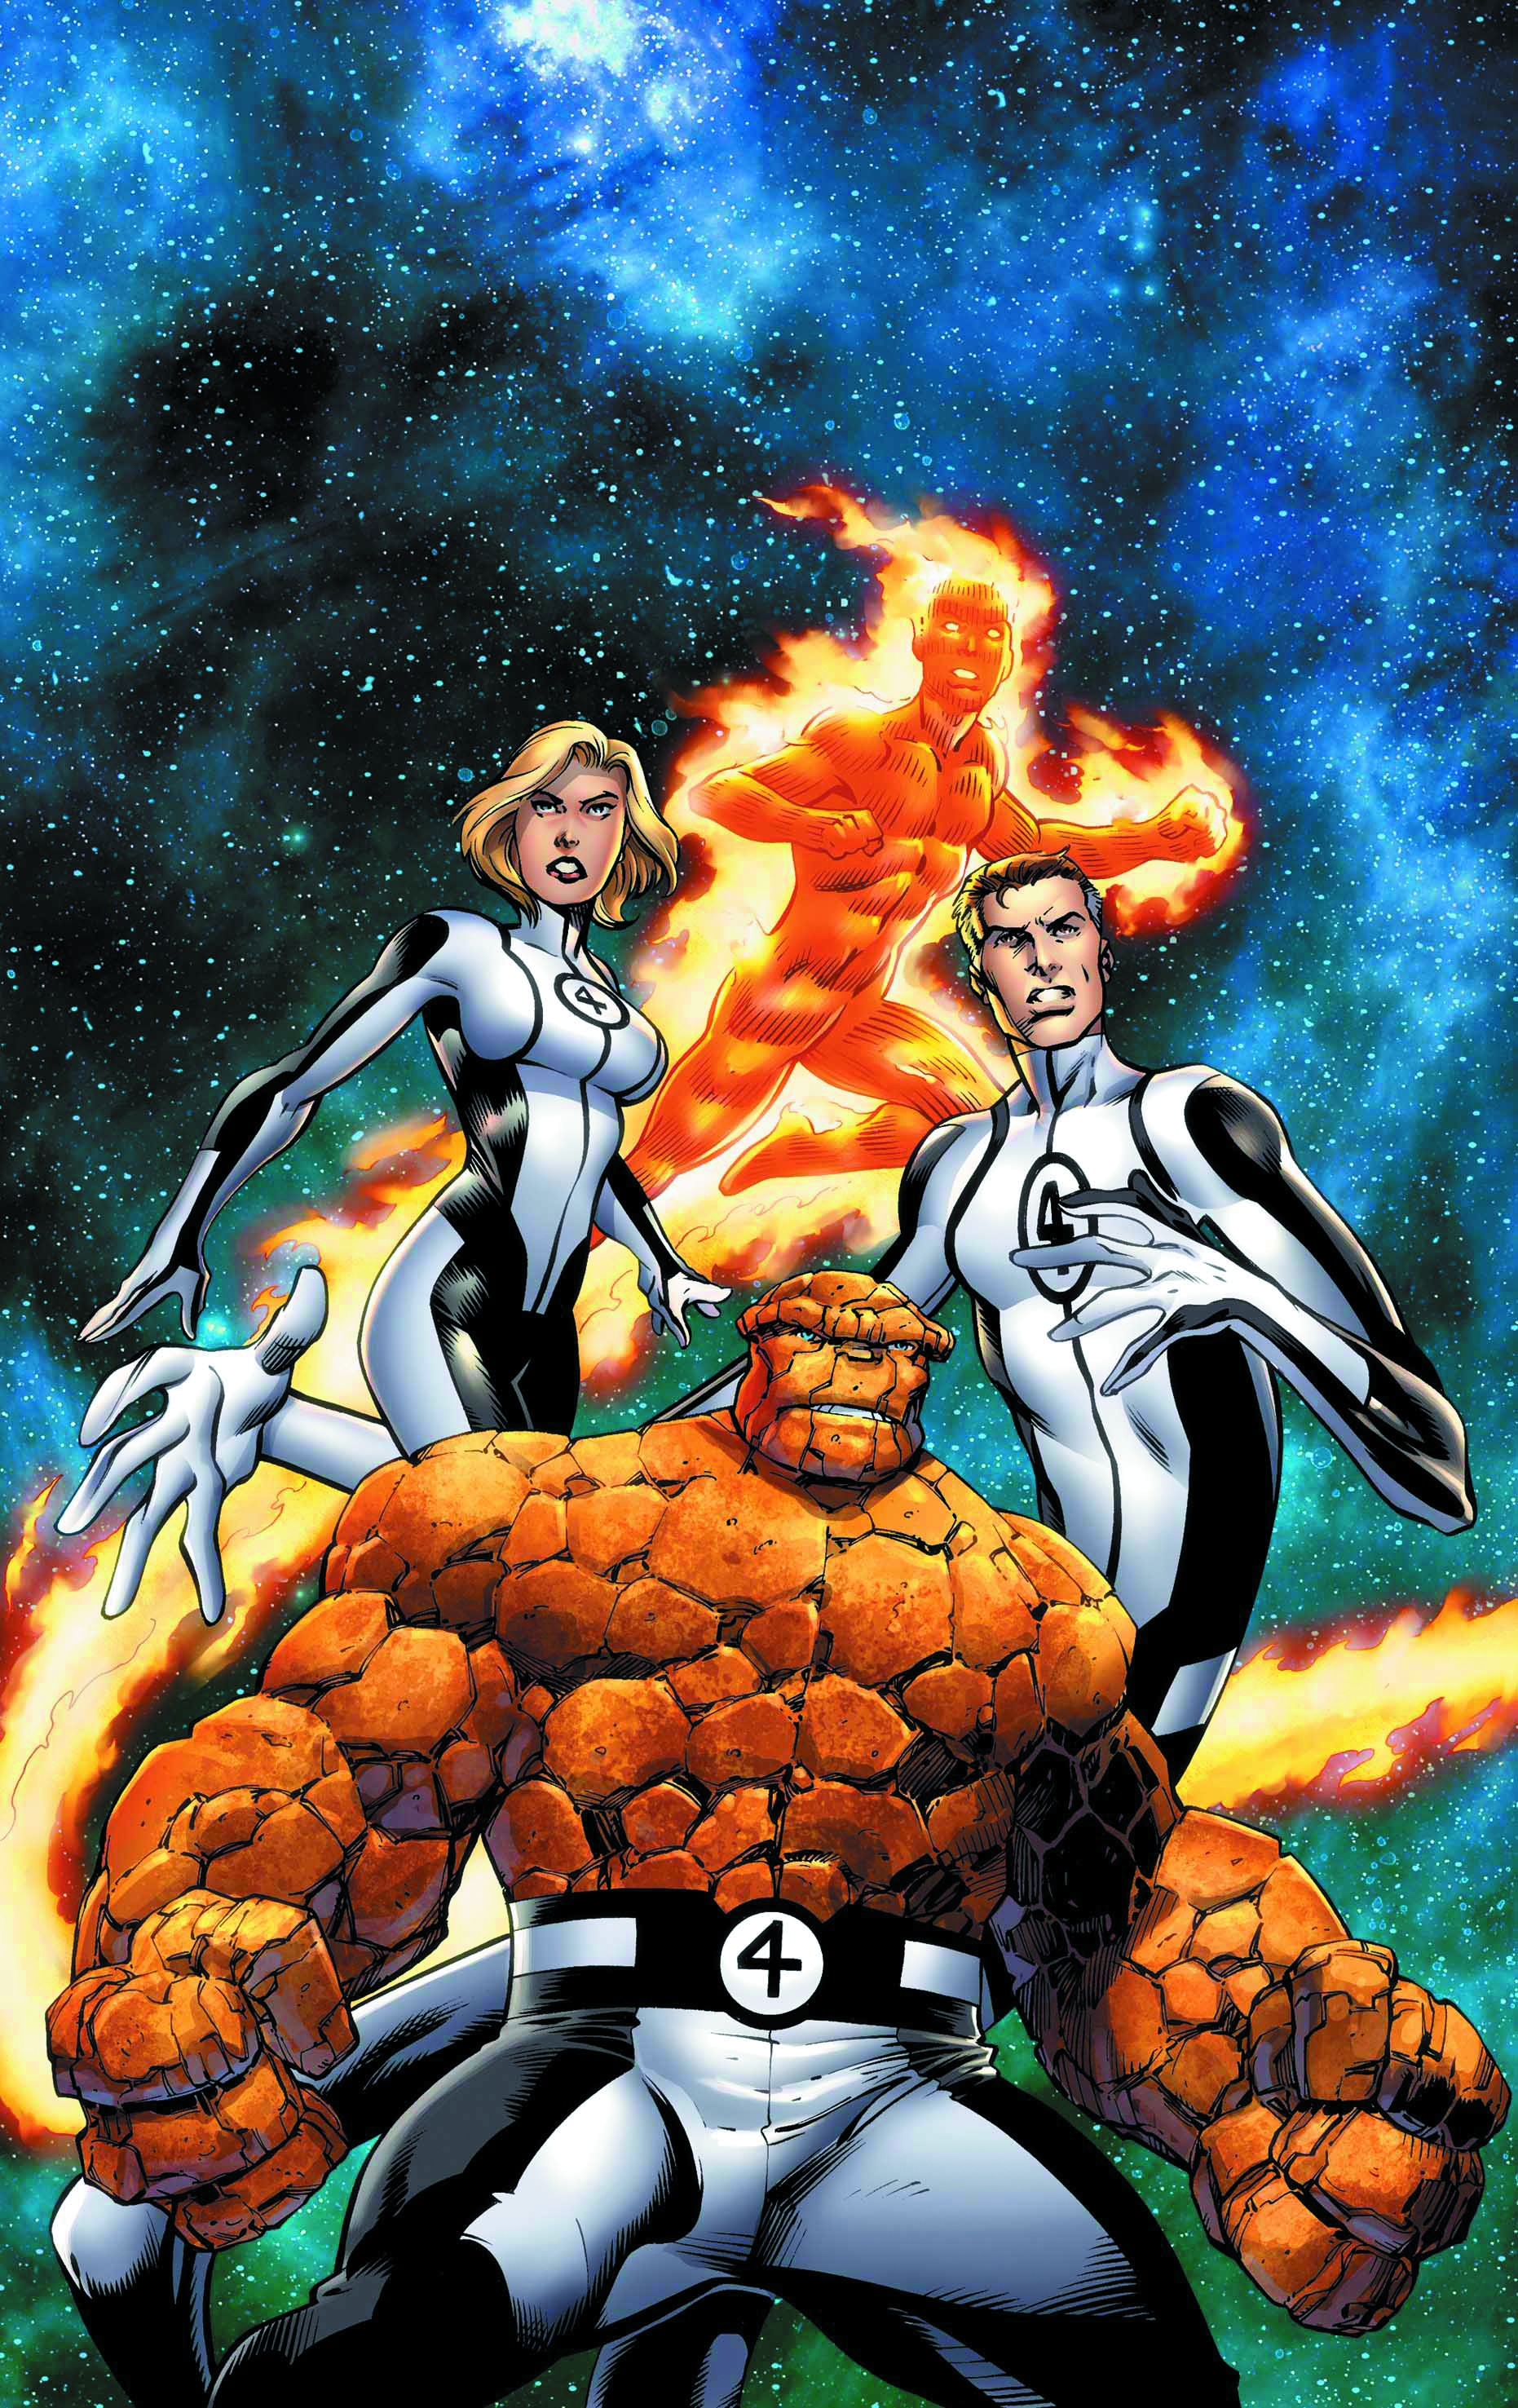 FANTASTIC FOUR BY BAGLEY POSTER NOW